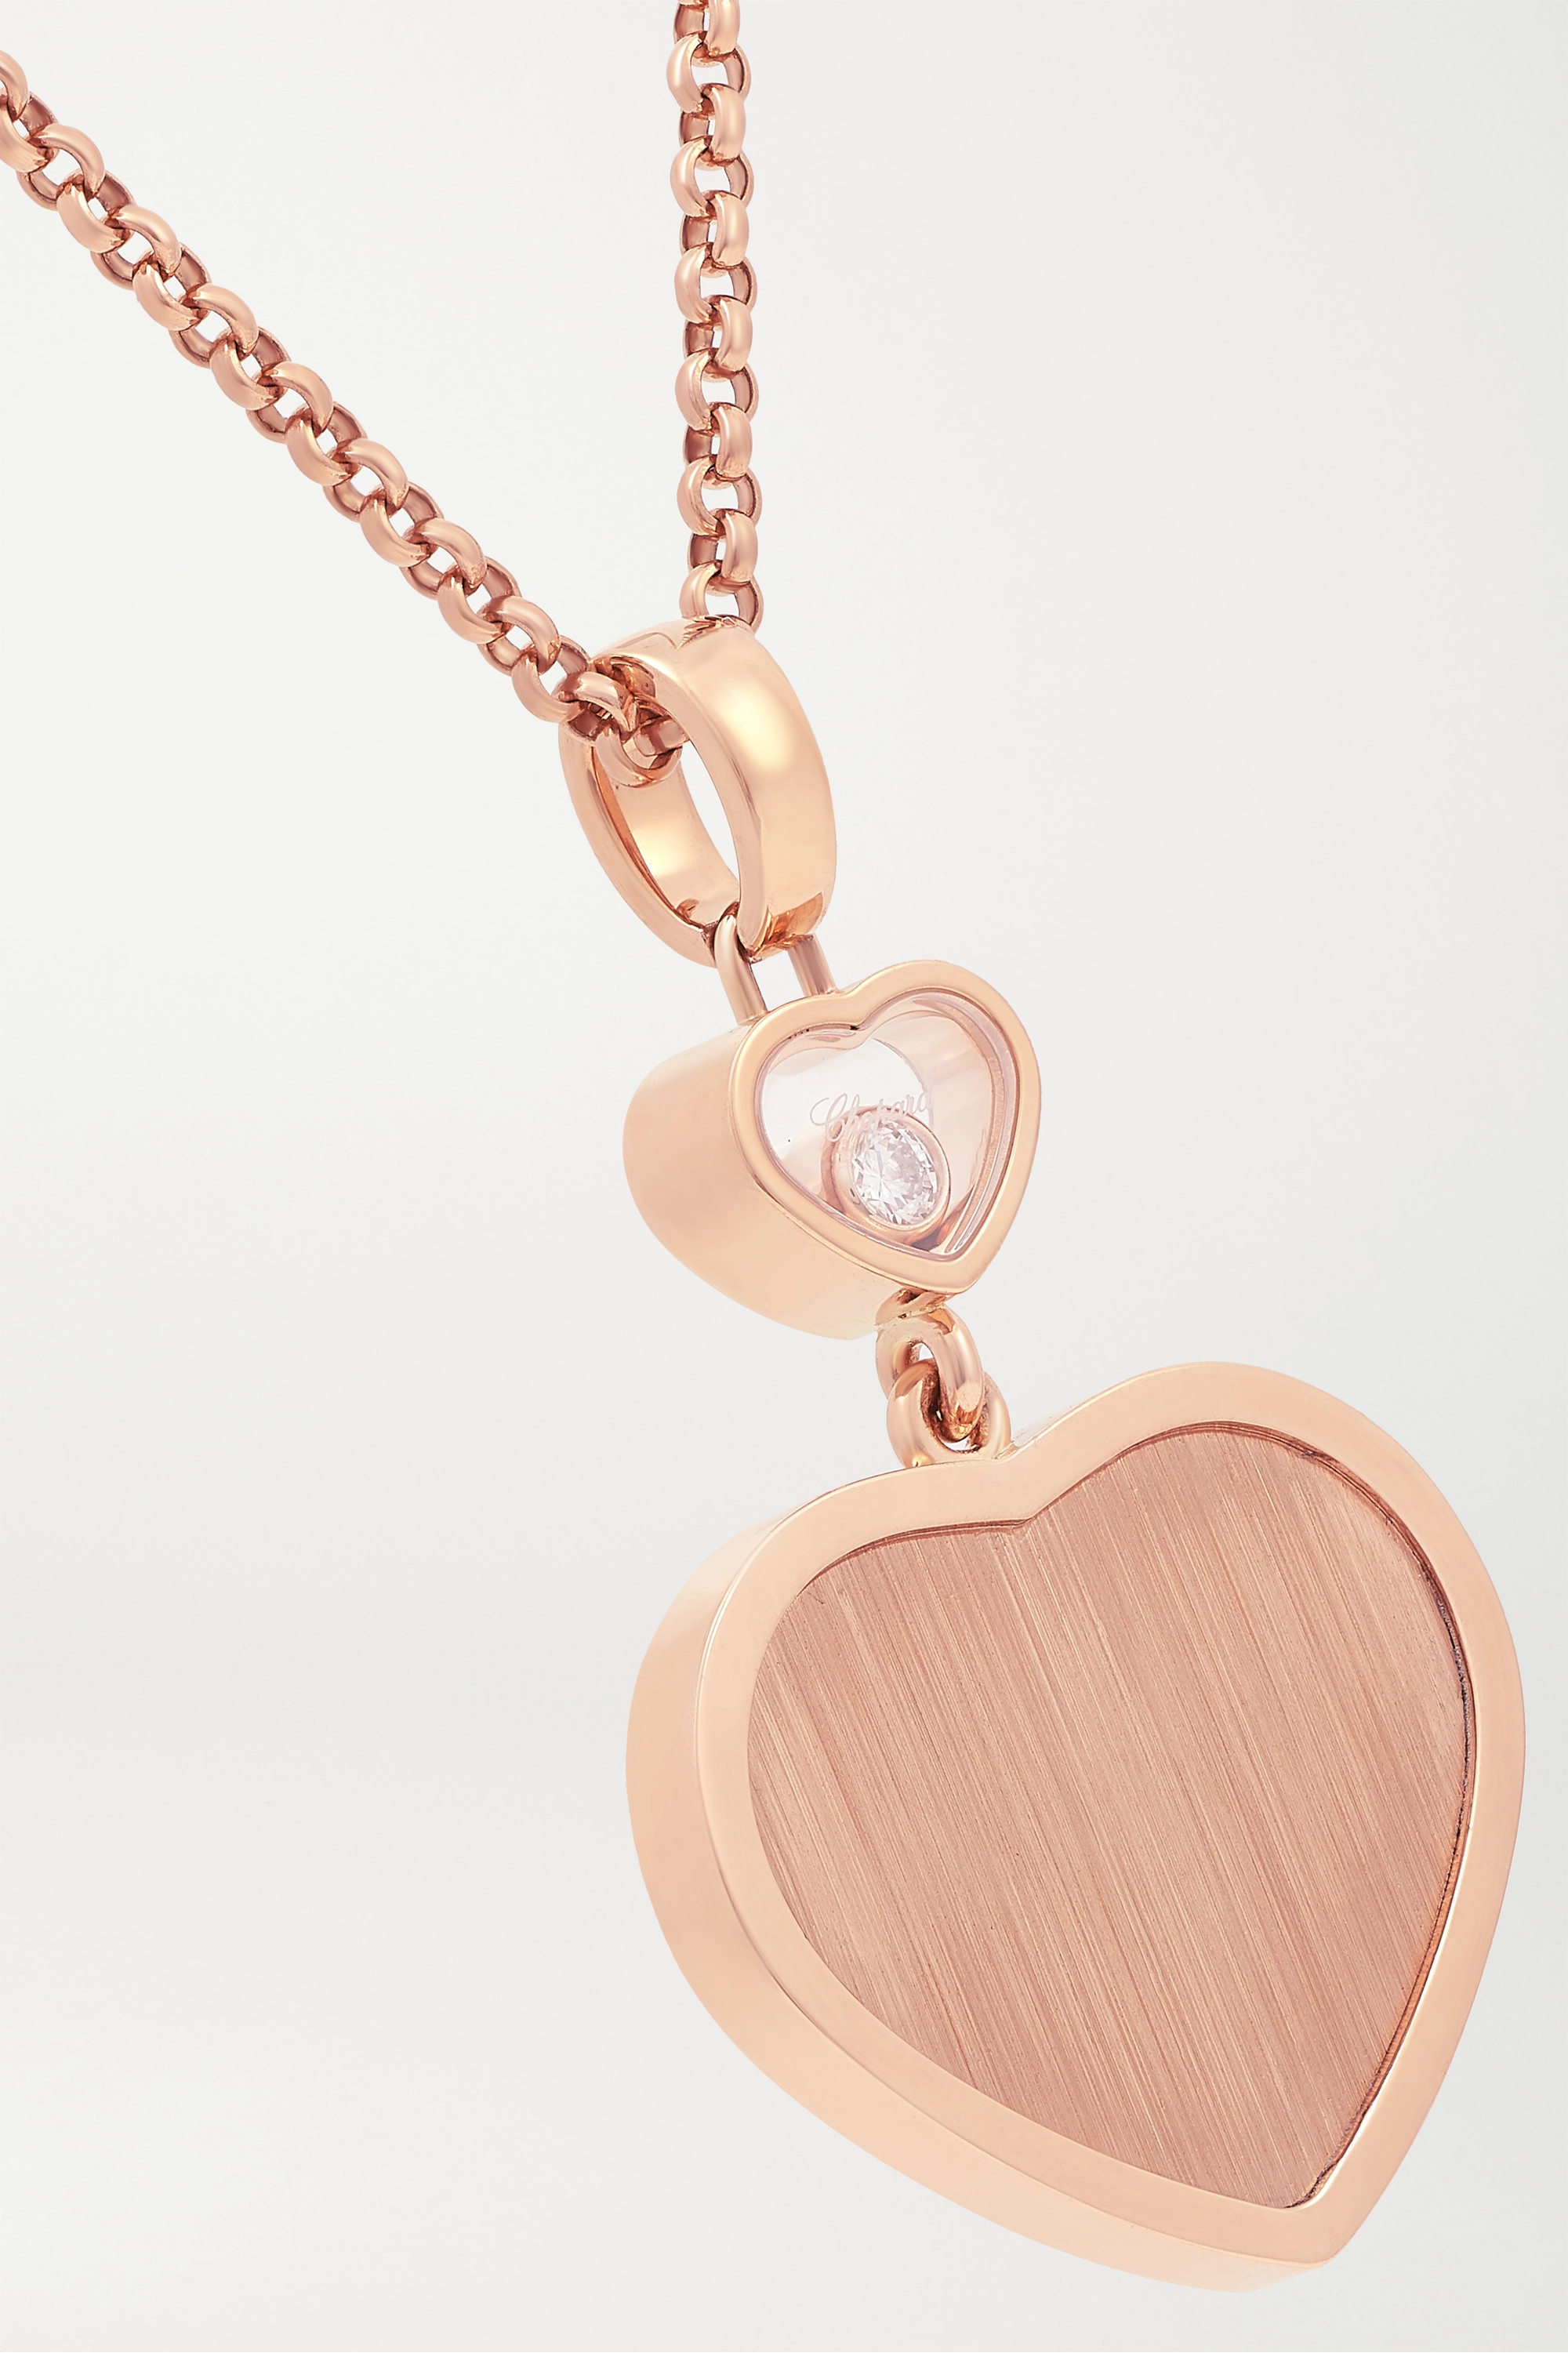 Chopard + 007 Happy Hearts Golden Hearts 18-karat rose gold diamond necklace